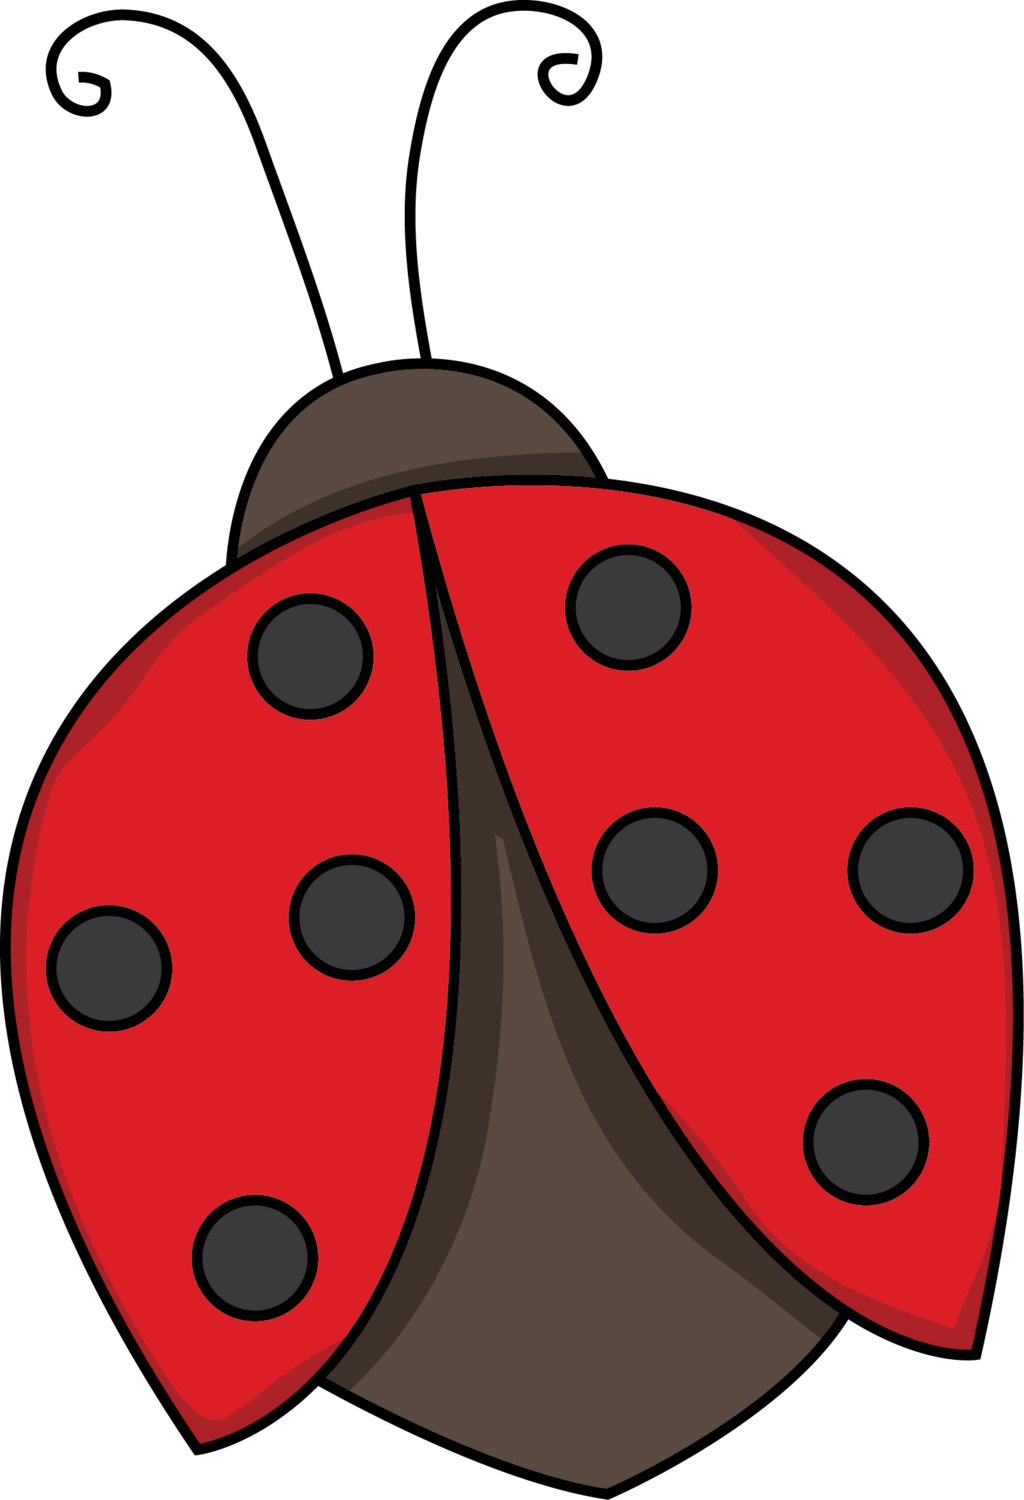 Fly clipart little bug. Flying ladybug black and